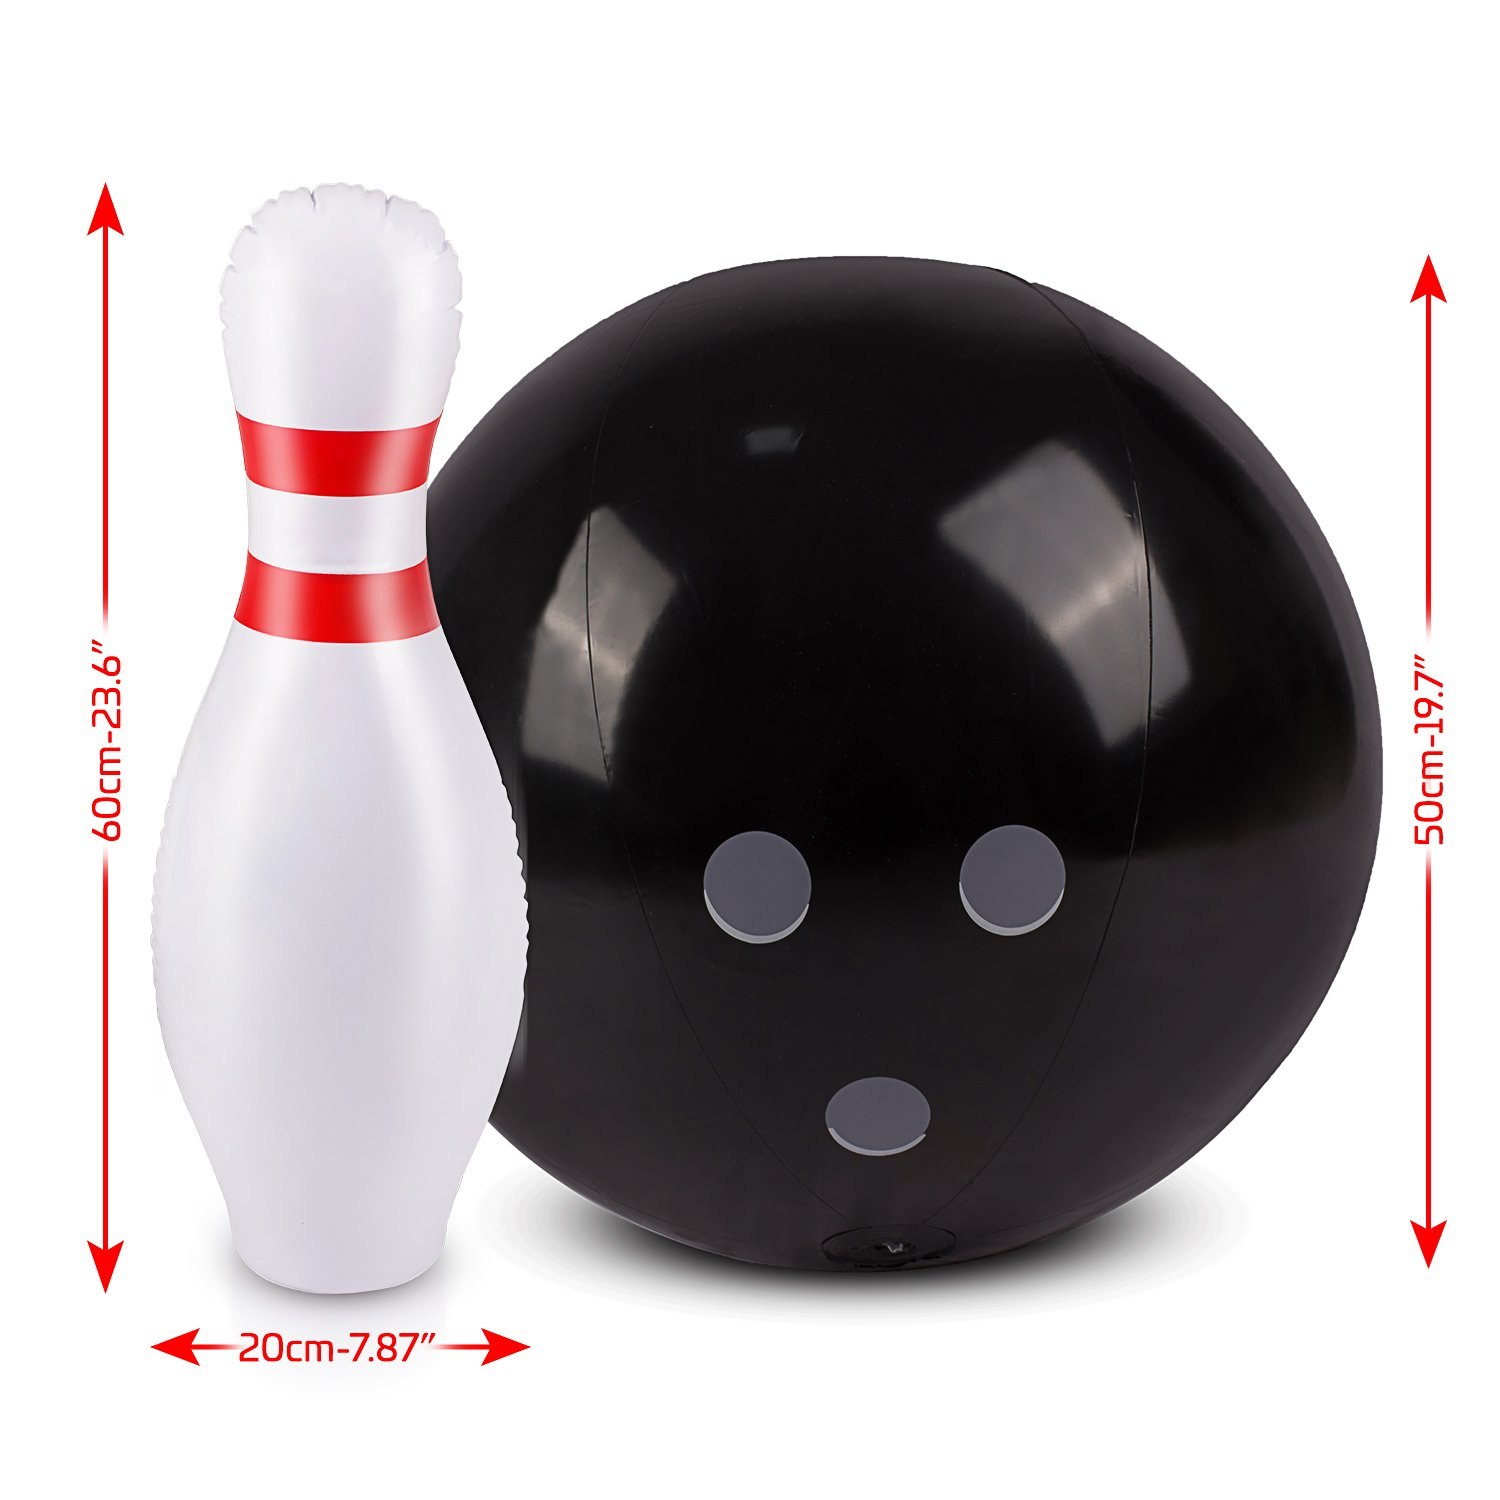 Inflatable Bowling Ball Set – Ideal Fun Game for Kids & Adults, Family Parties & Picnics – Outdoor or Indoor - Stable & Durable – Perfect Size – Includes 1 Ball & 6 Pins by ABCO TECH (Image #4)